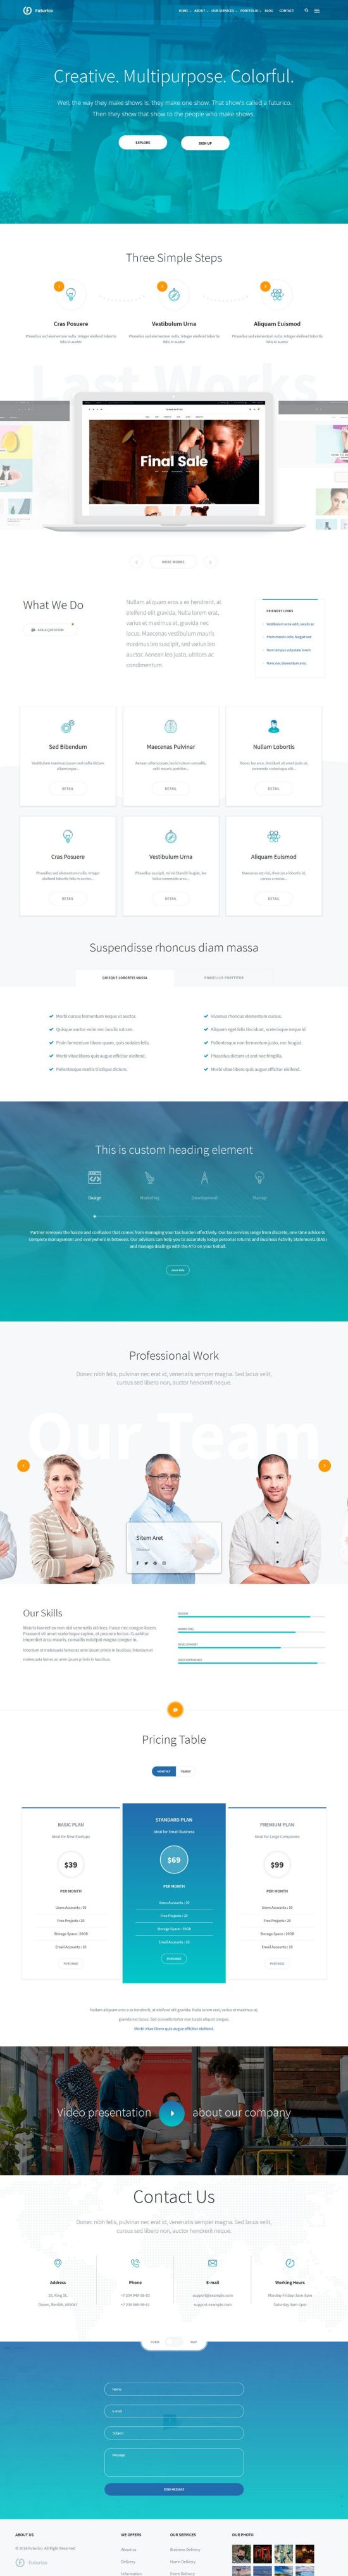 futurico wordpress theme 01 - Futurico WordPress Theme